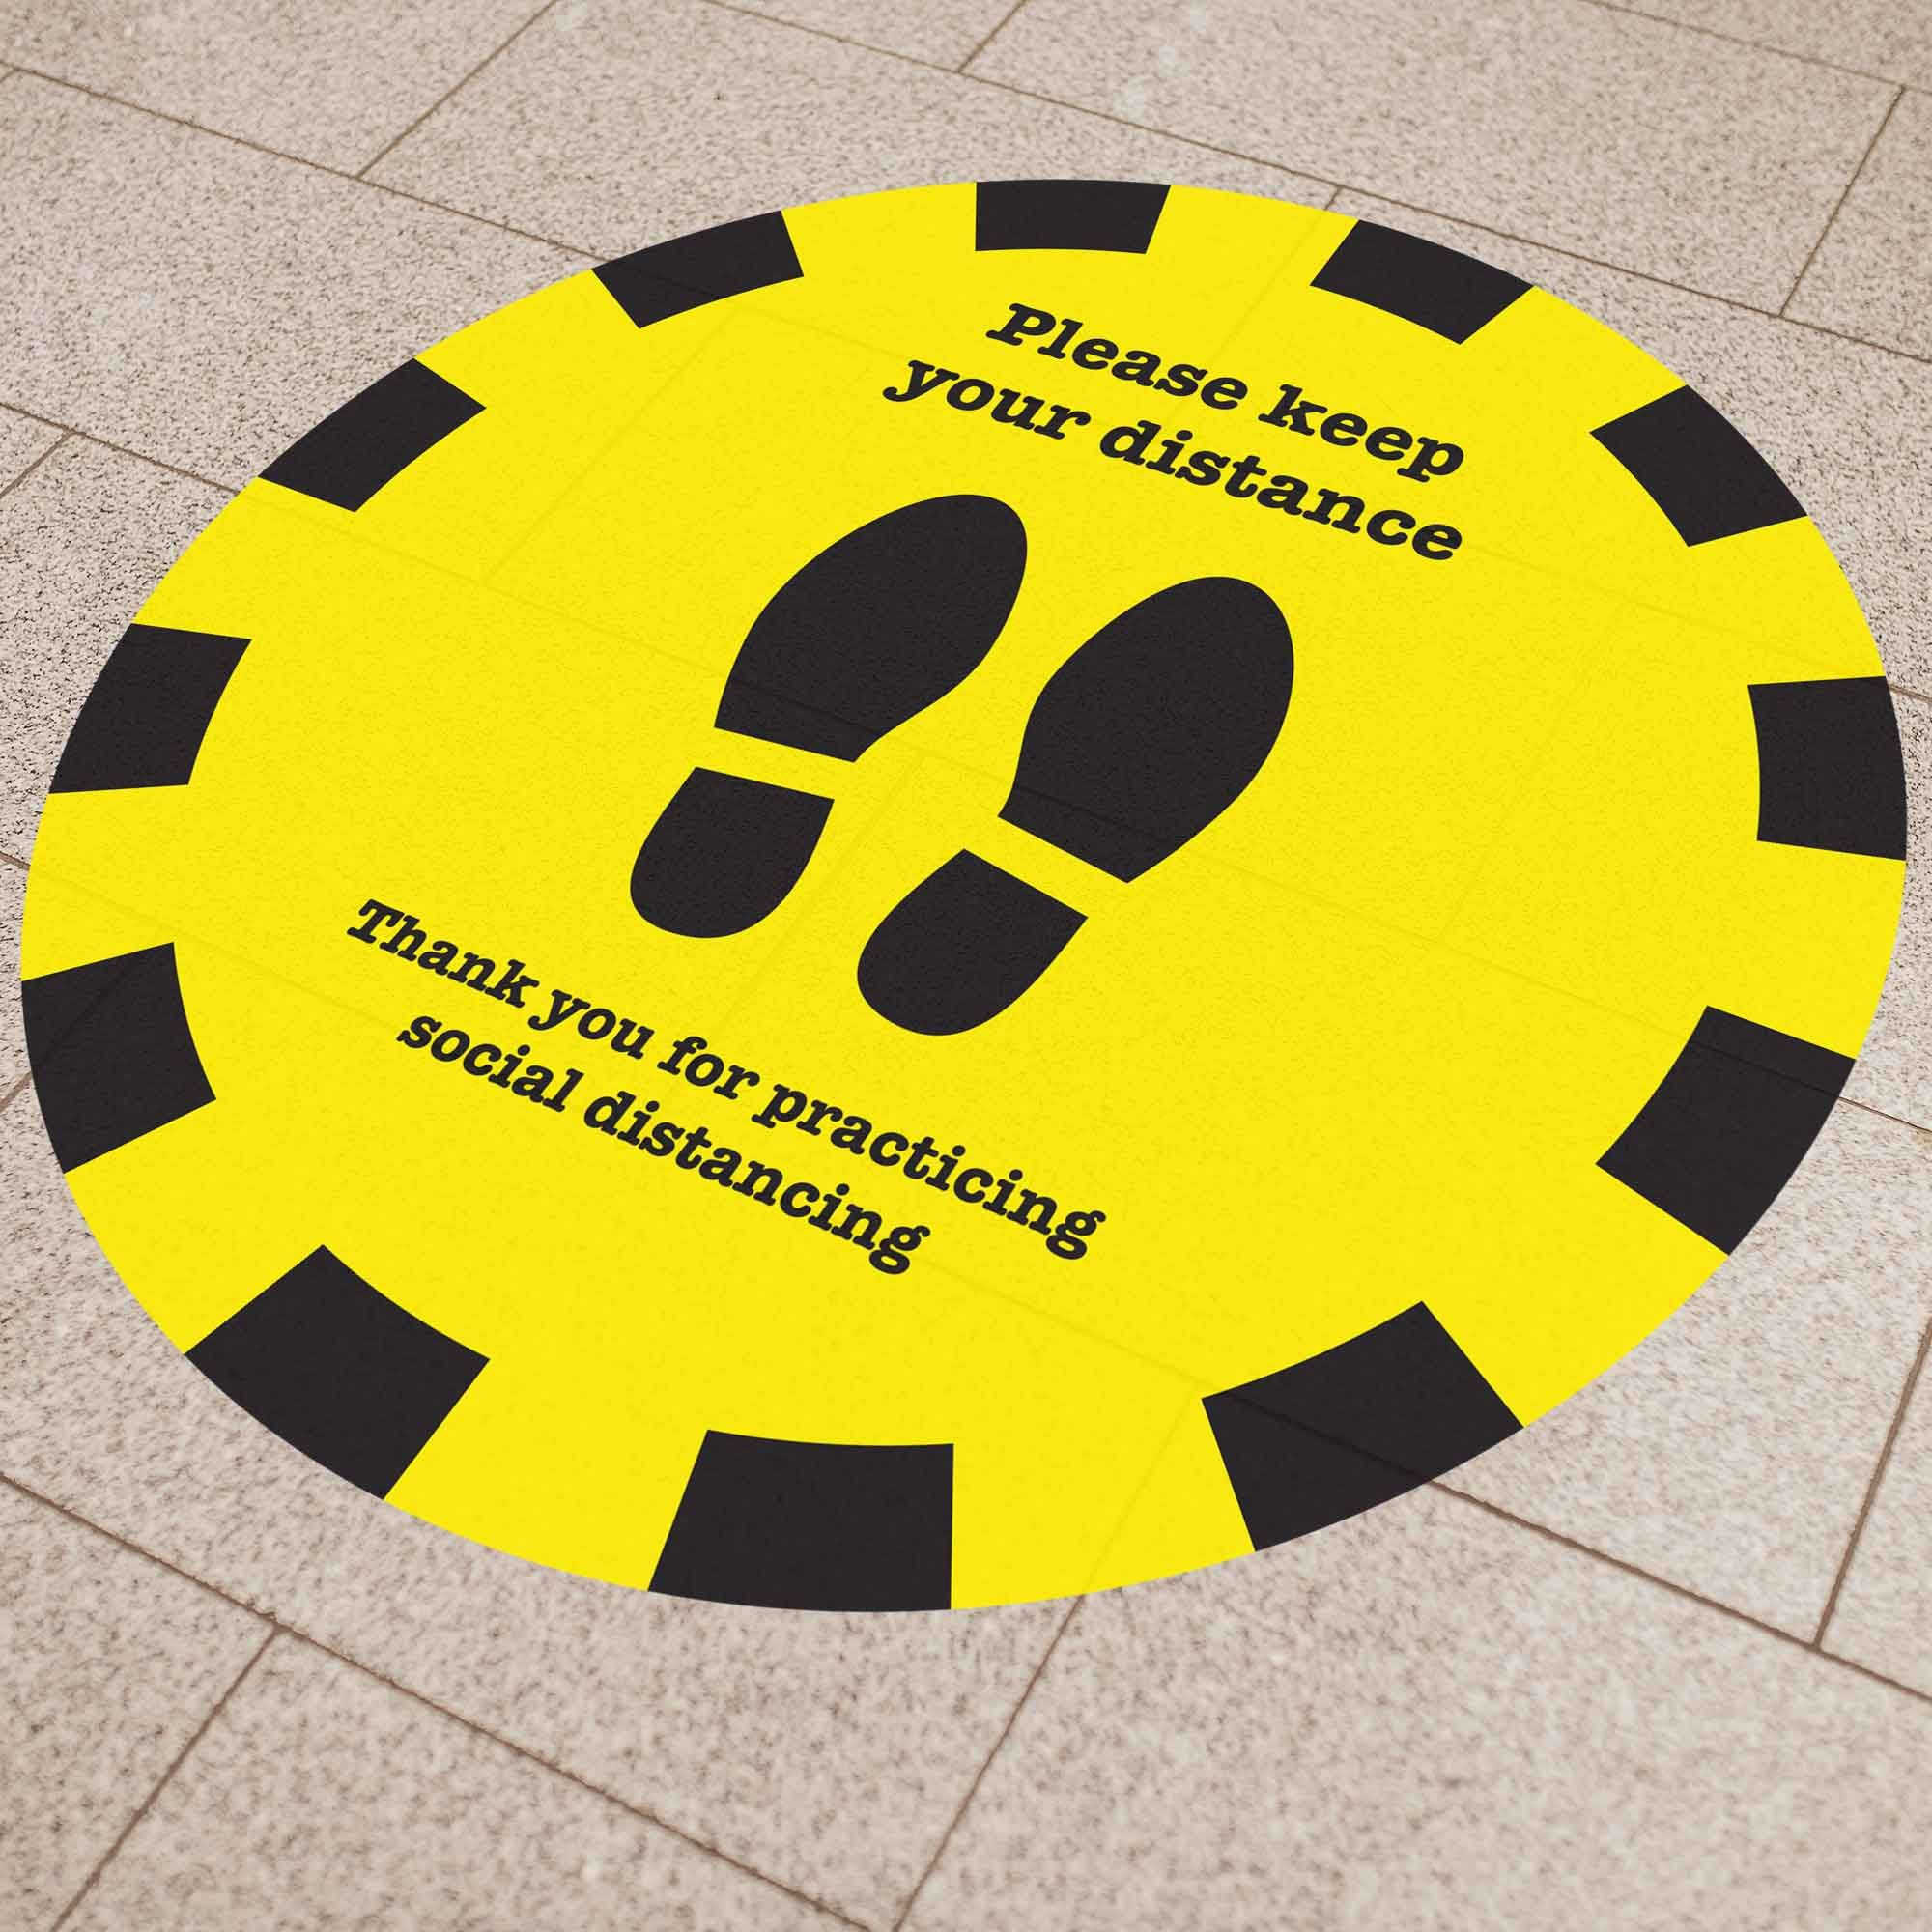 Social Distancing Floor Stencil to Create Your Own Floor Signage